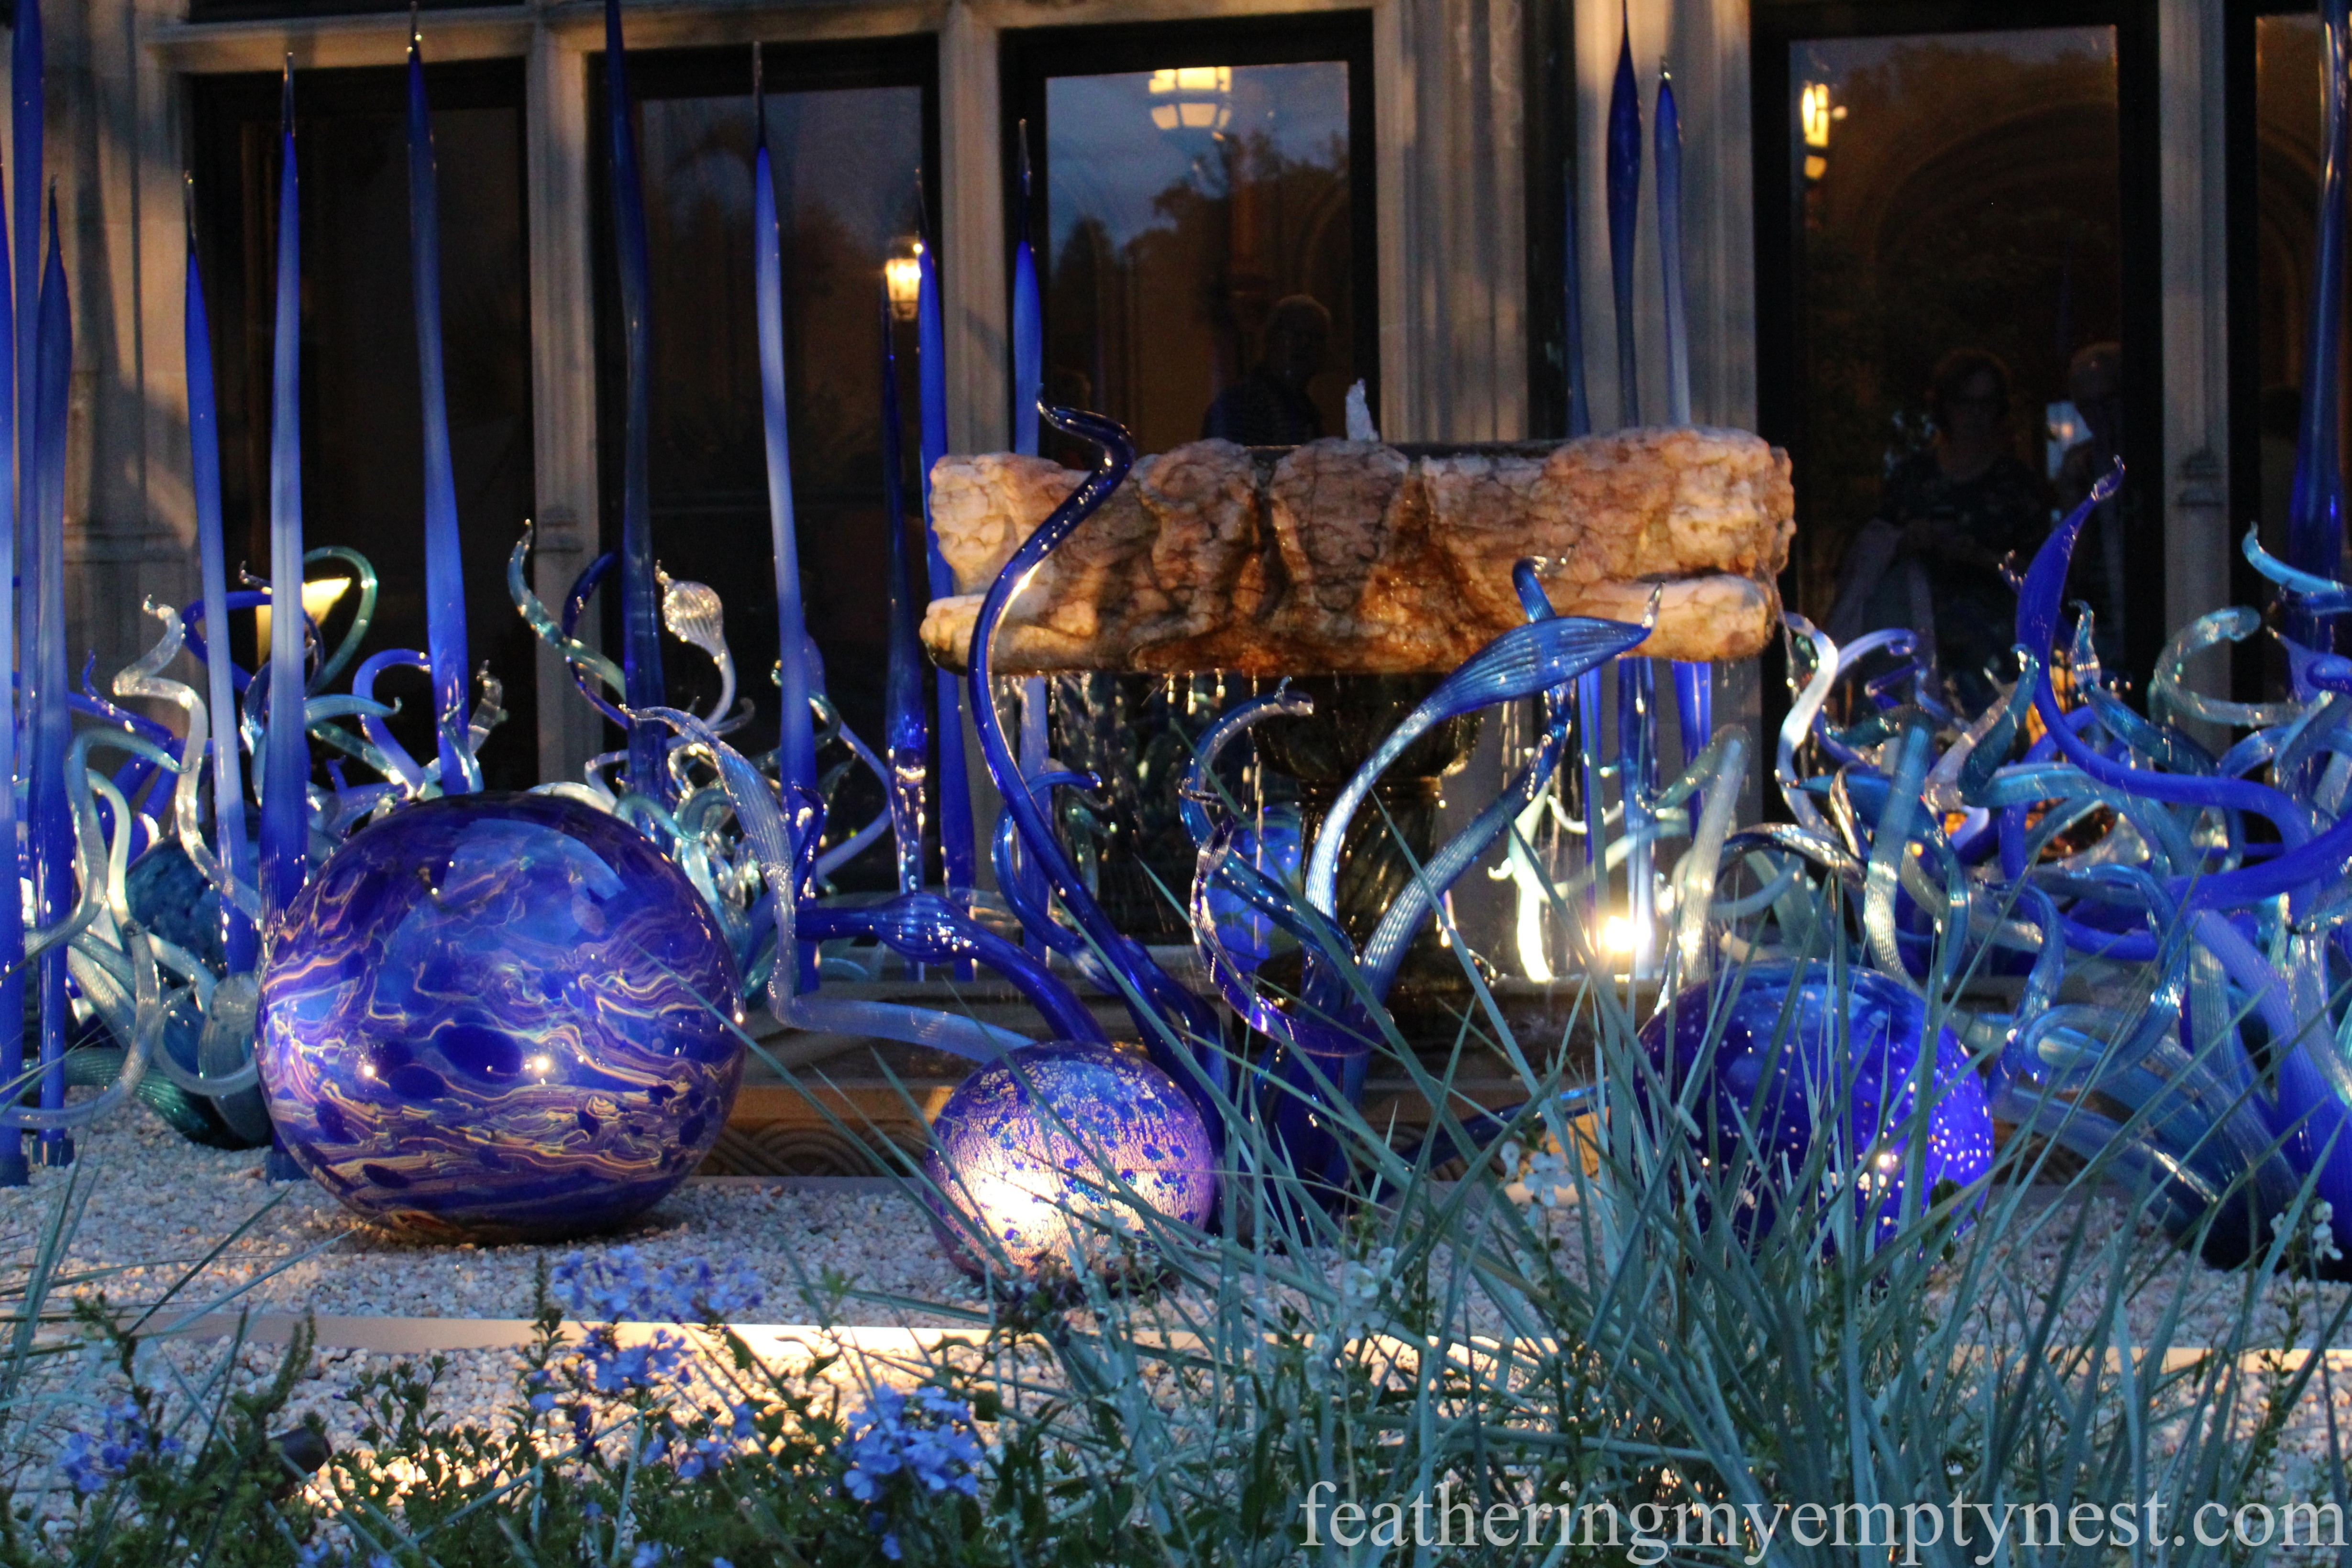 Chihuly glass sculpture at the Biltmore --Chihuly At Night At The Biltmore